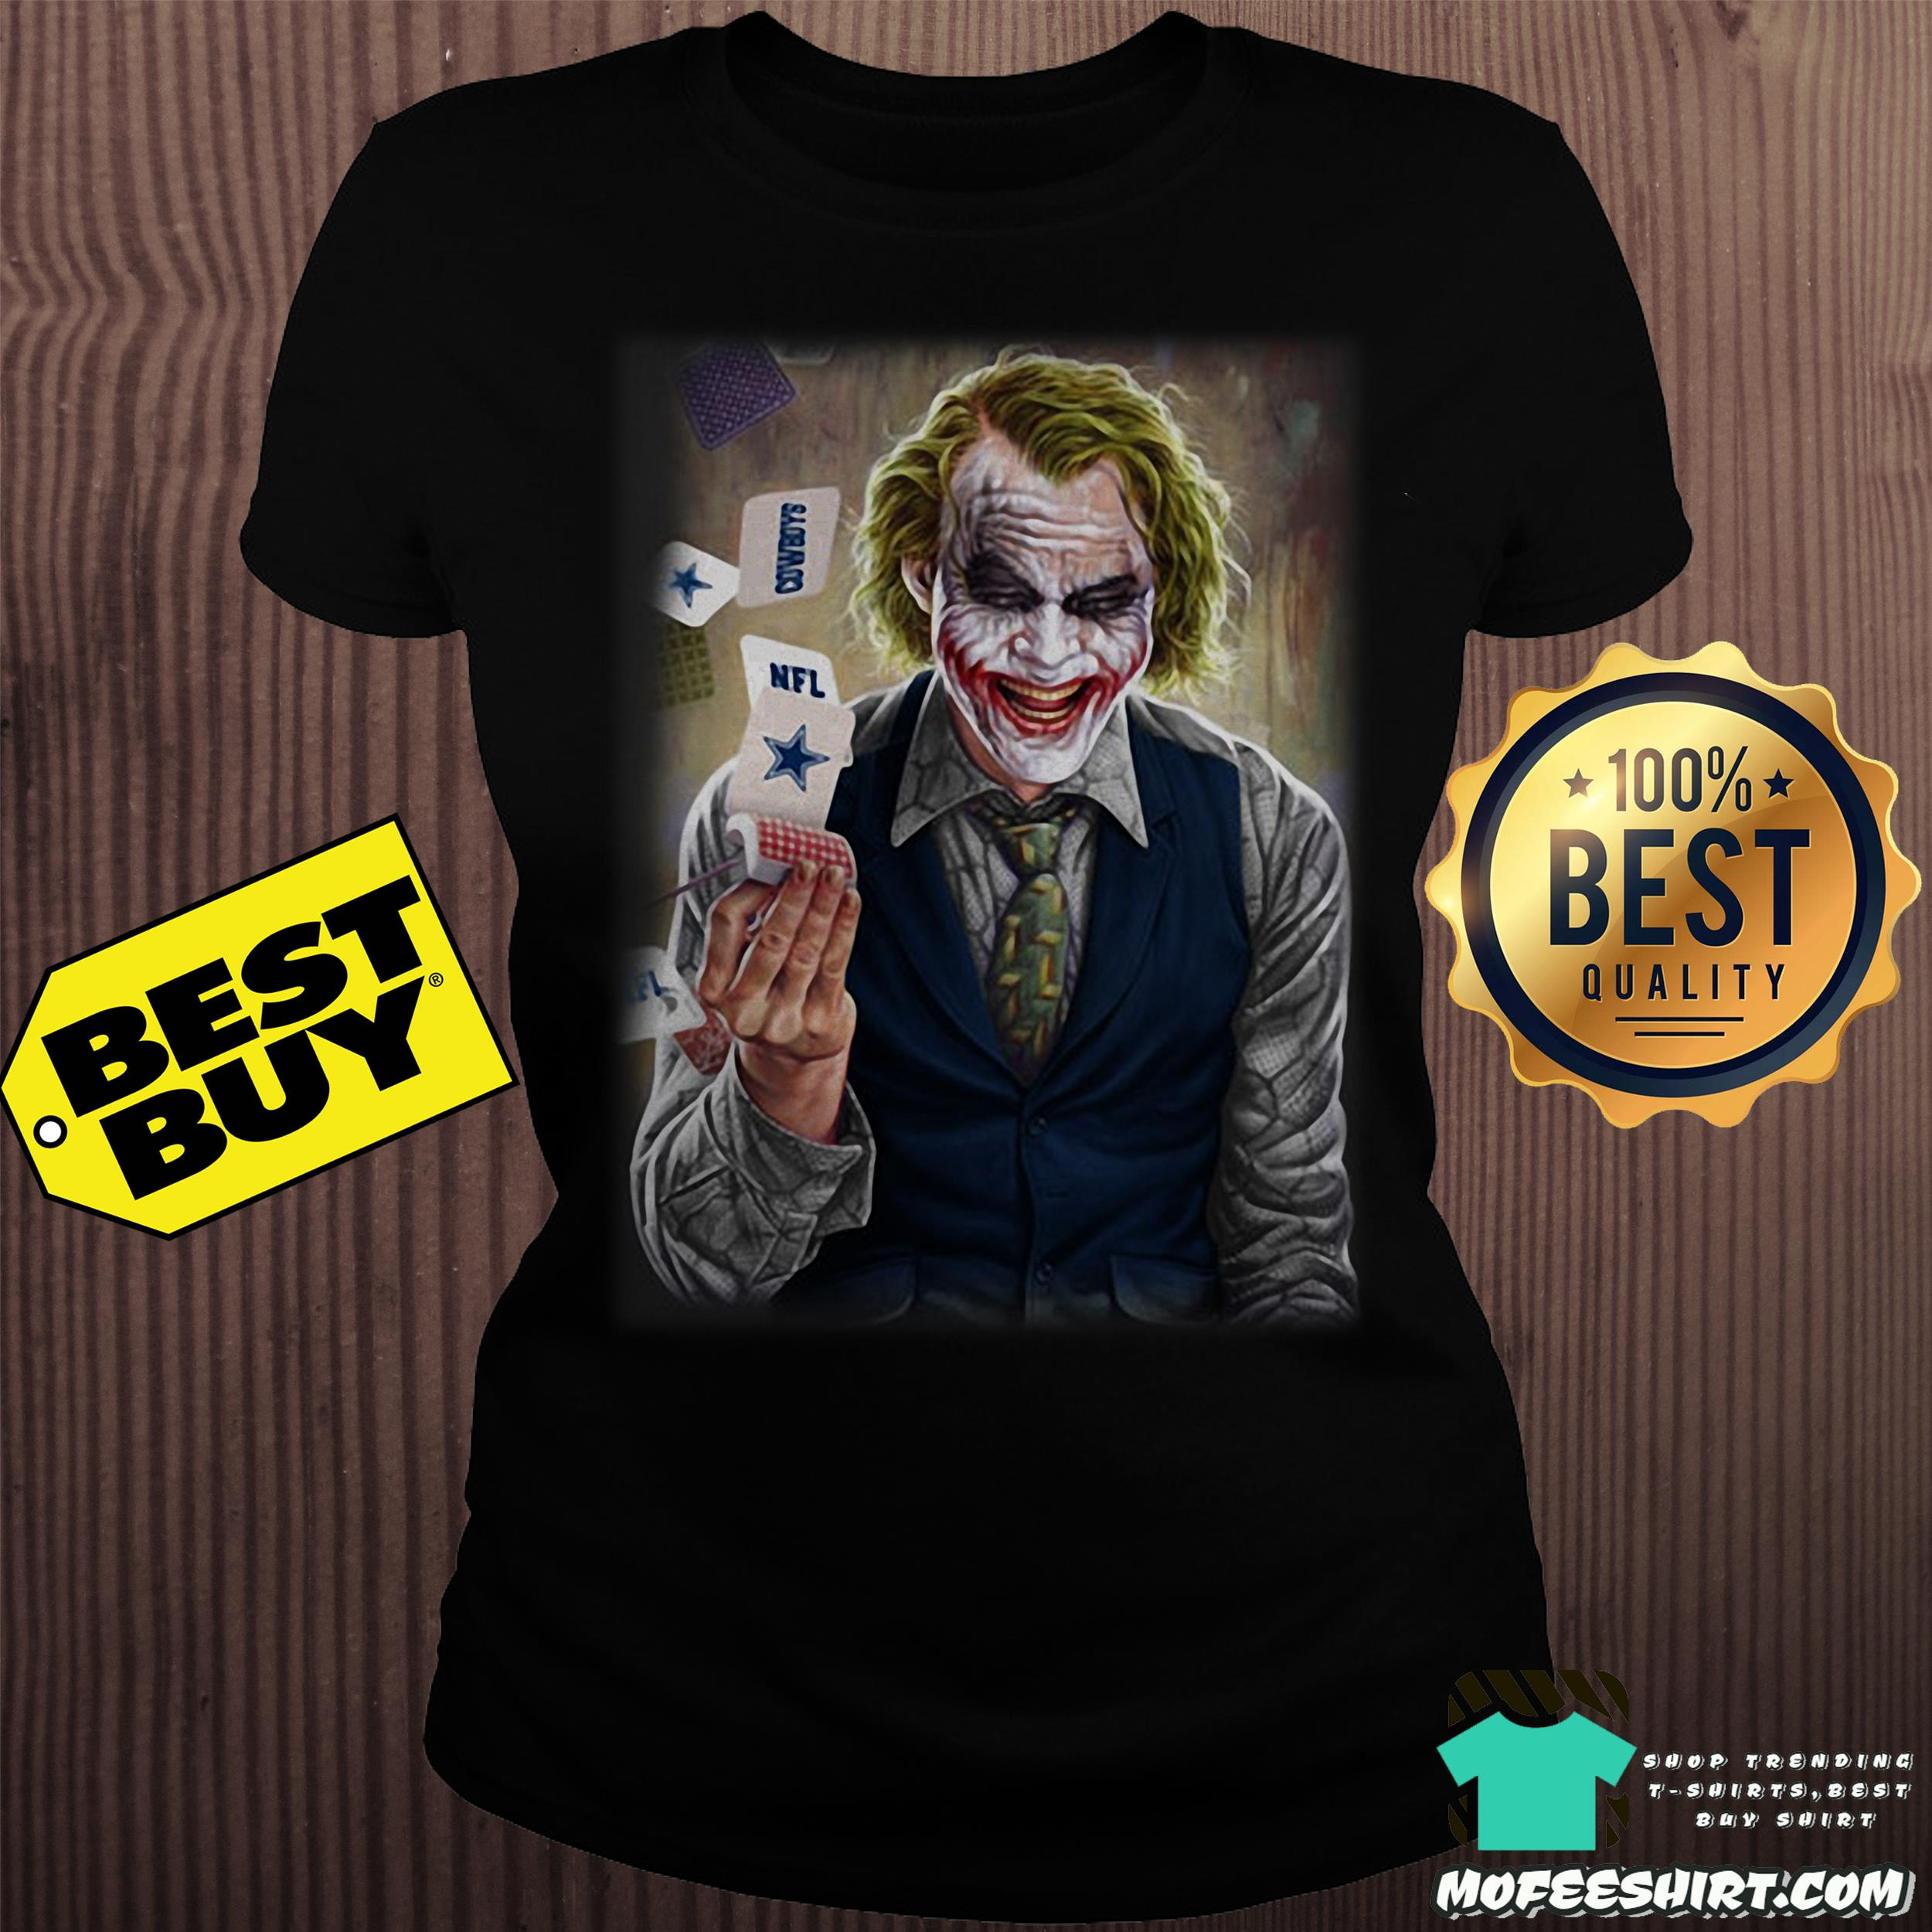 nfl joker playing cards dark knight ladies tee - NFL Joker Playing Cards Dark Knight shirt